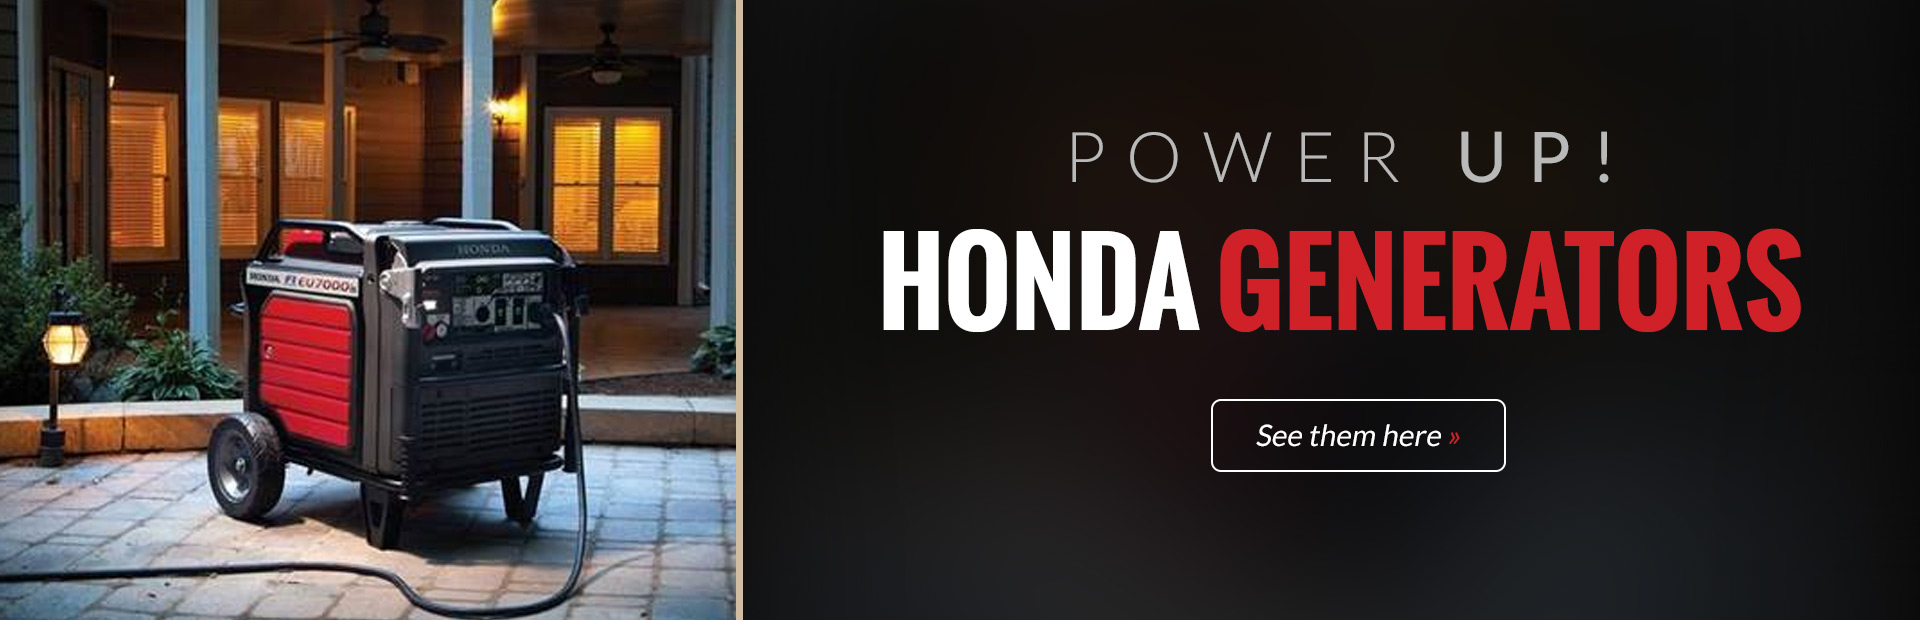 Home Interstate Honda Fort Collins, CO (970) 493-8881